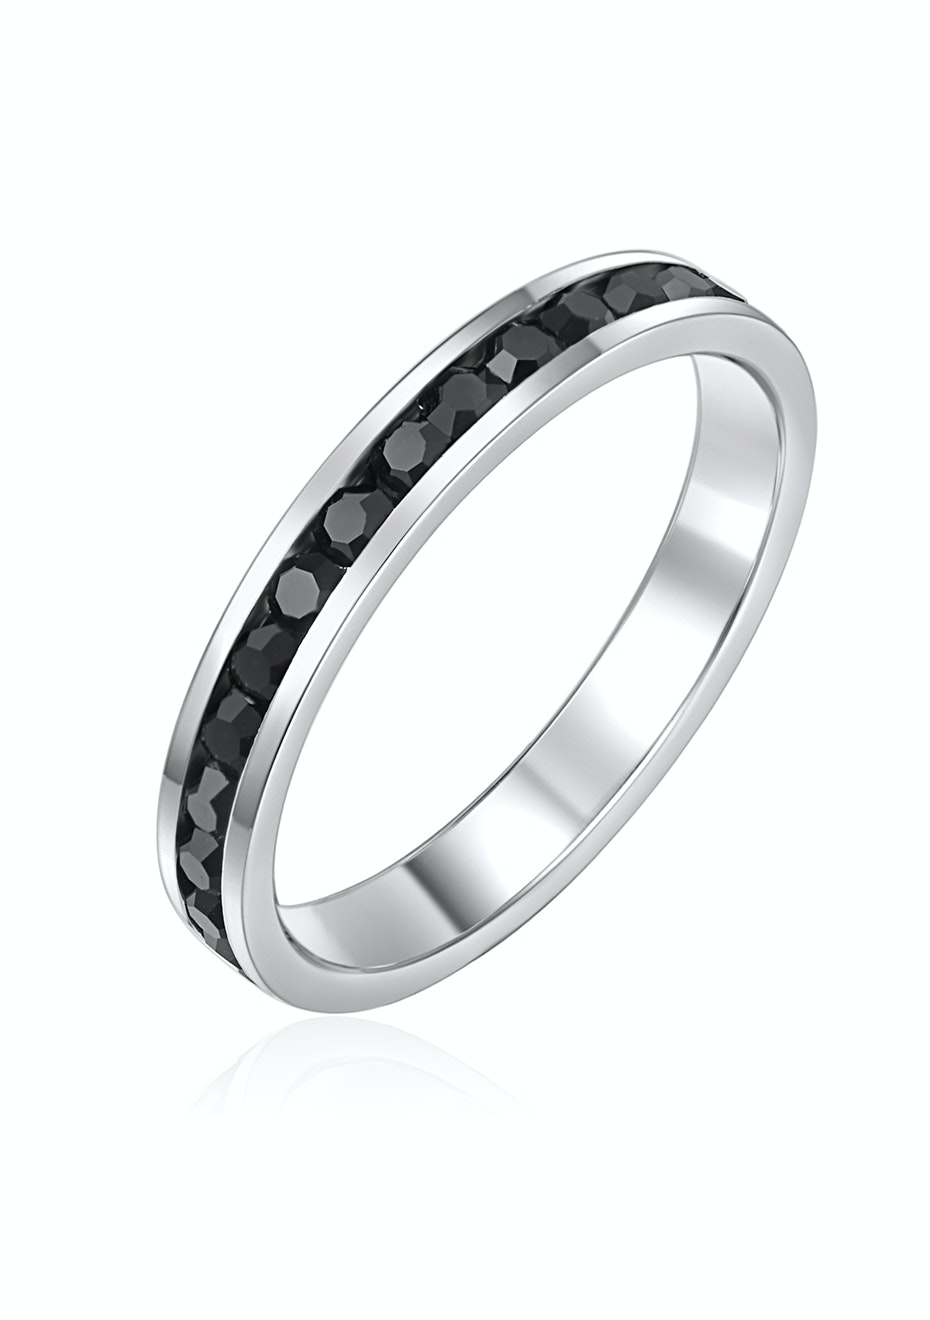 Stackable Ring - White Gold w Black Embellished with Crystals from Swarovski